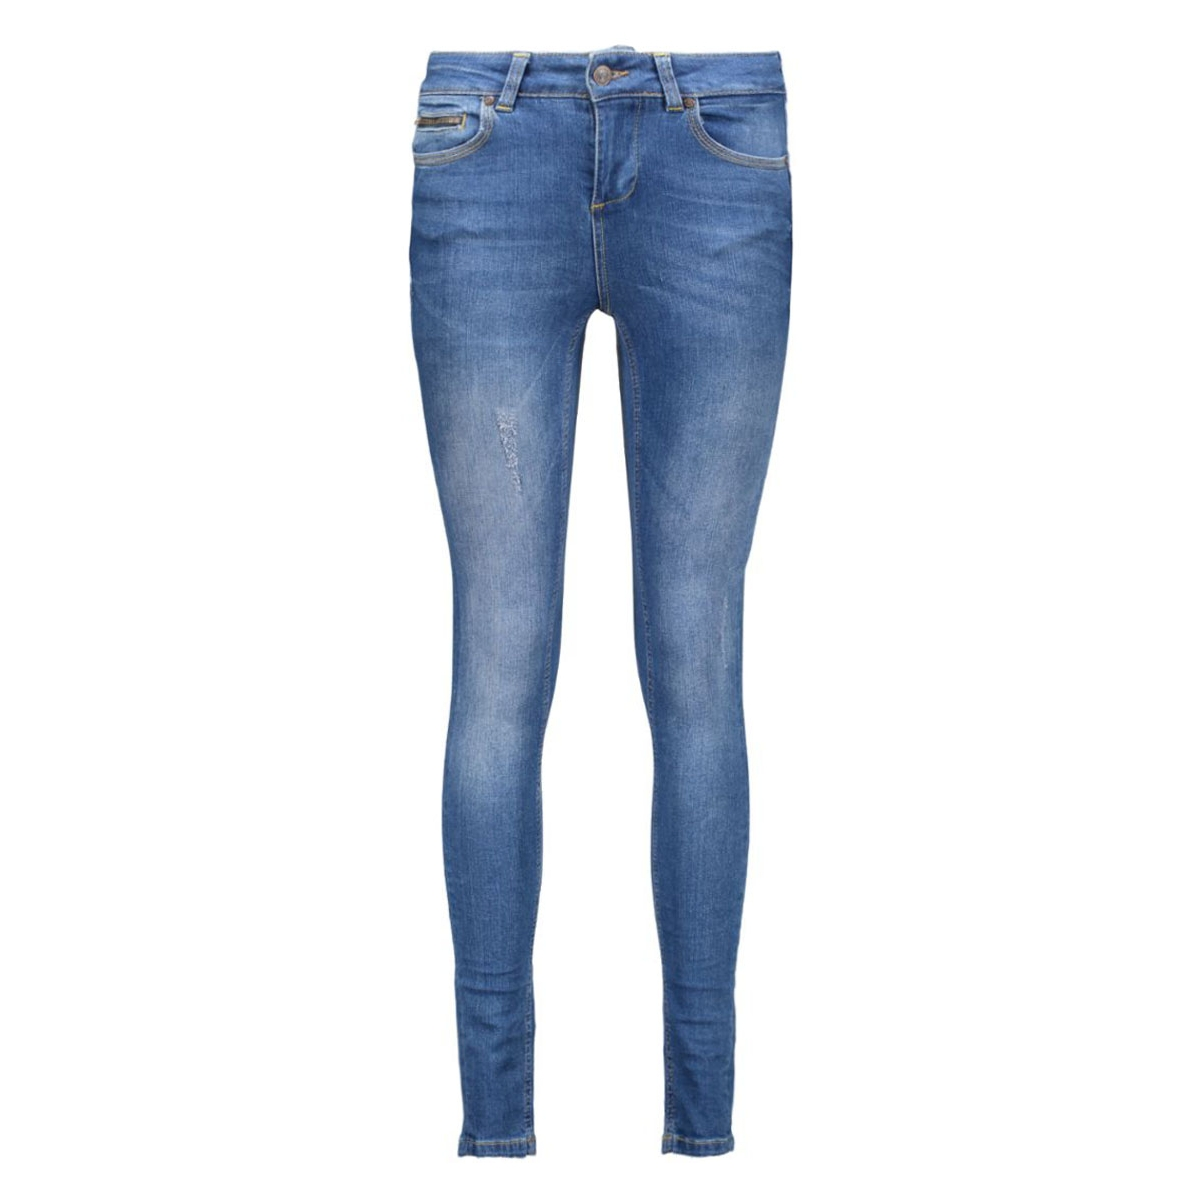 objskinnysally mw obb205 noos 23022906 object jeans medium blue denim